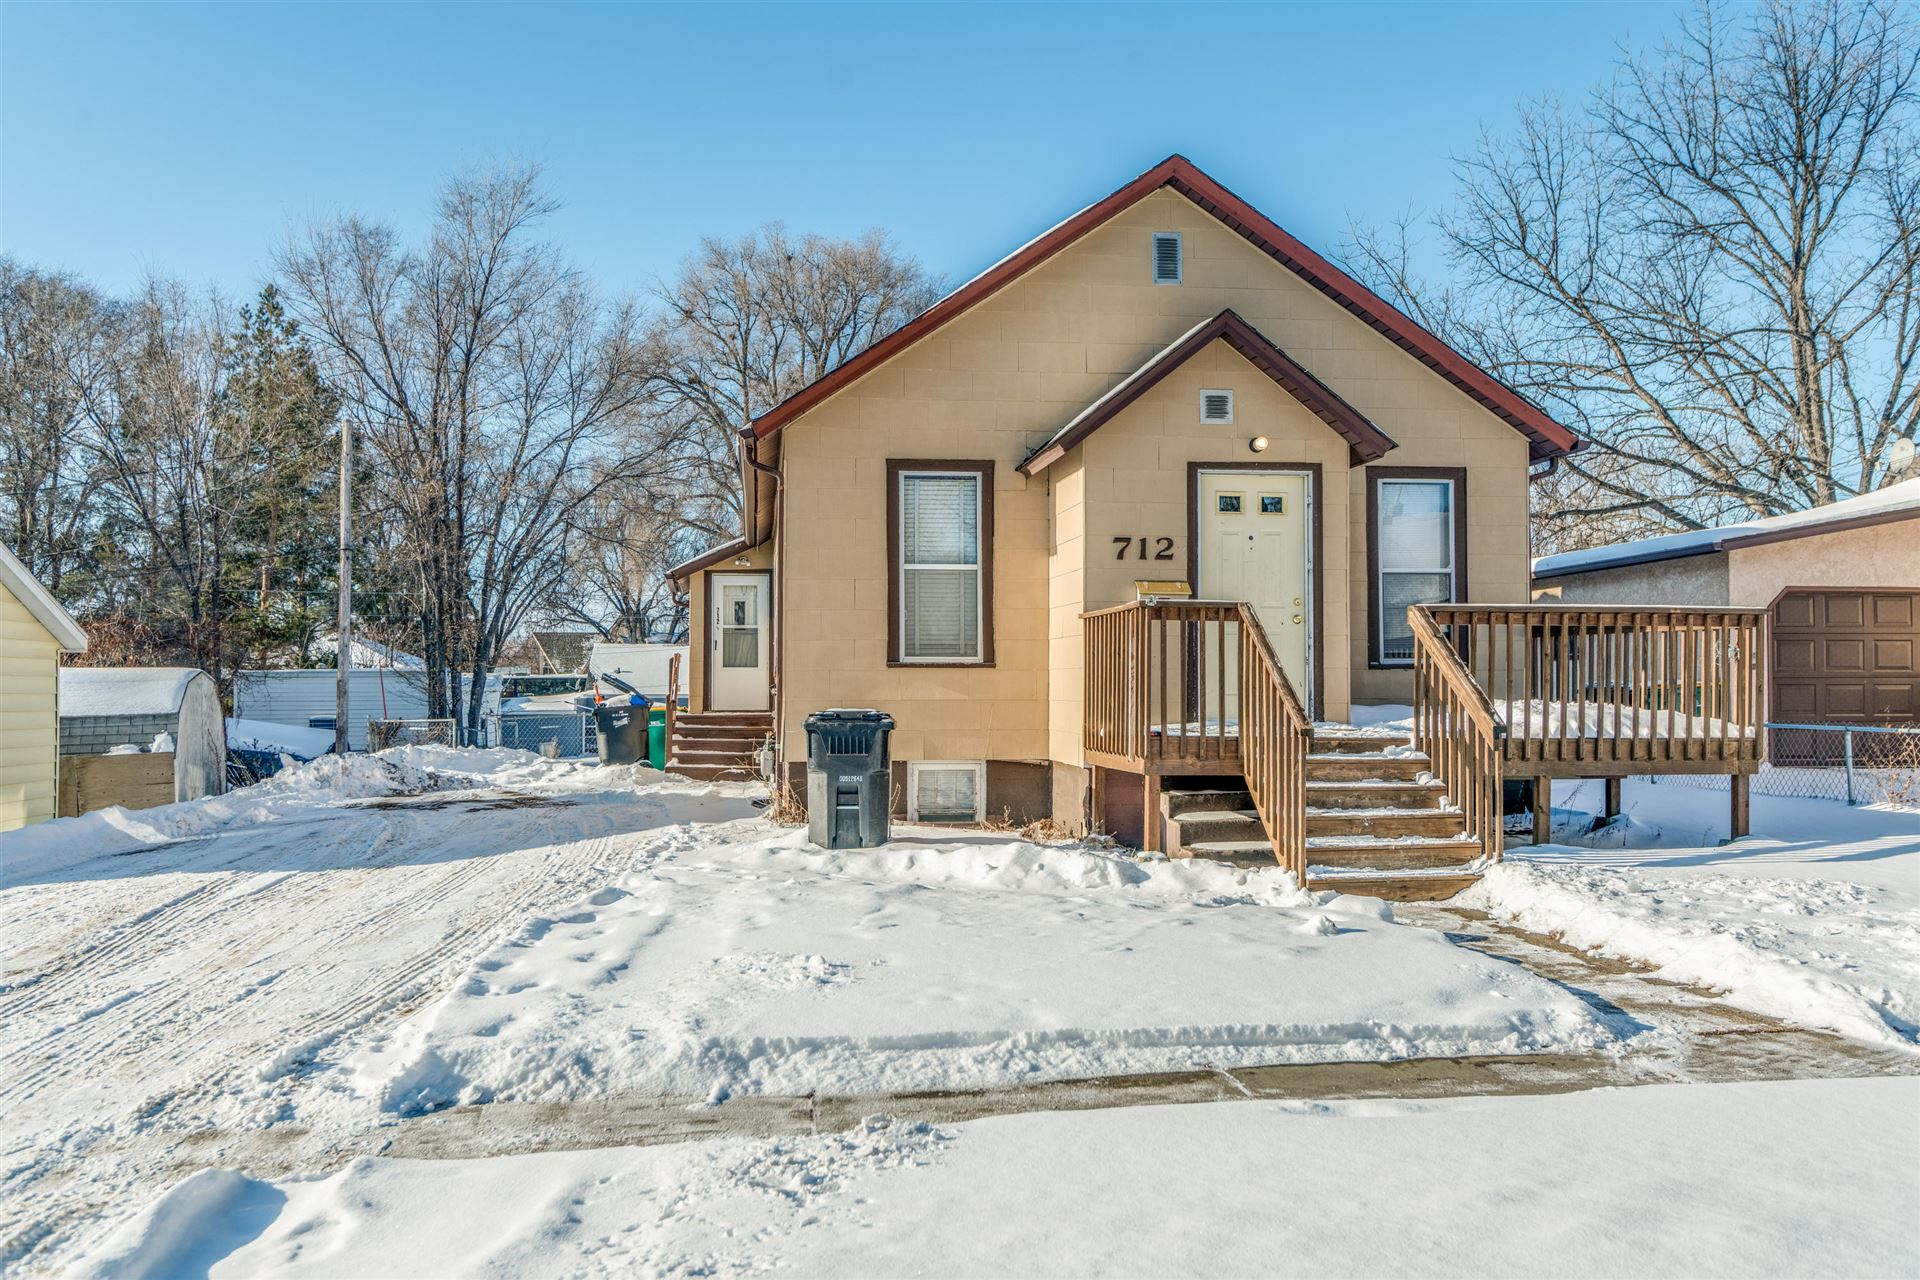 712 N 16th Street, Bismarck, ND 58501 - #: 407647